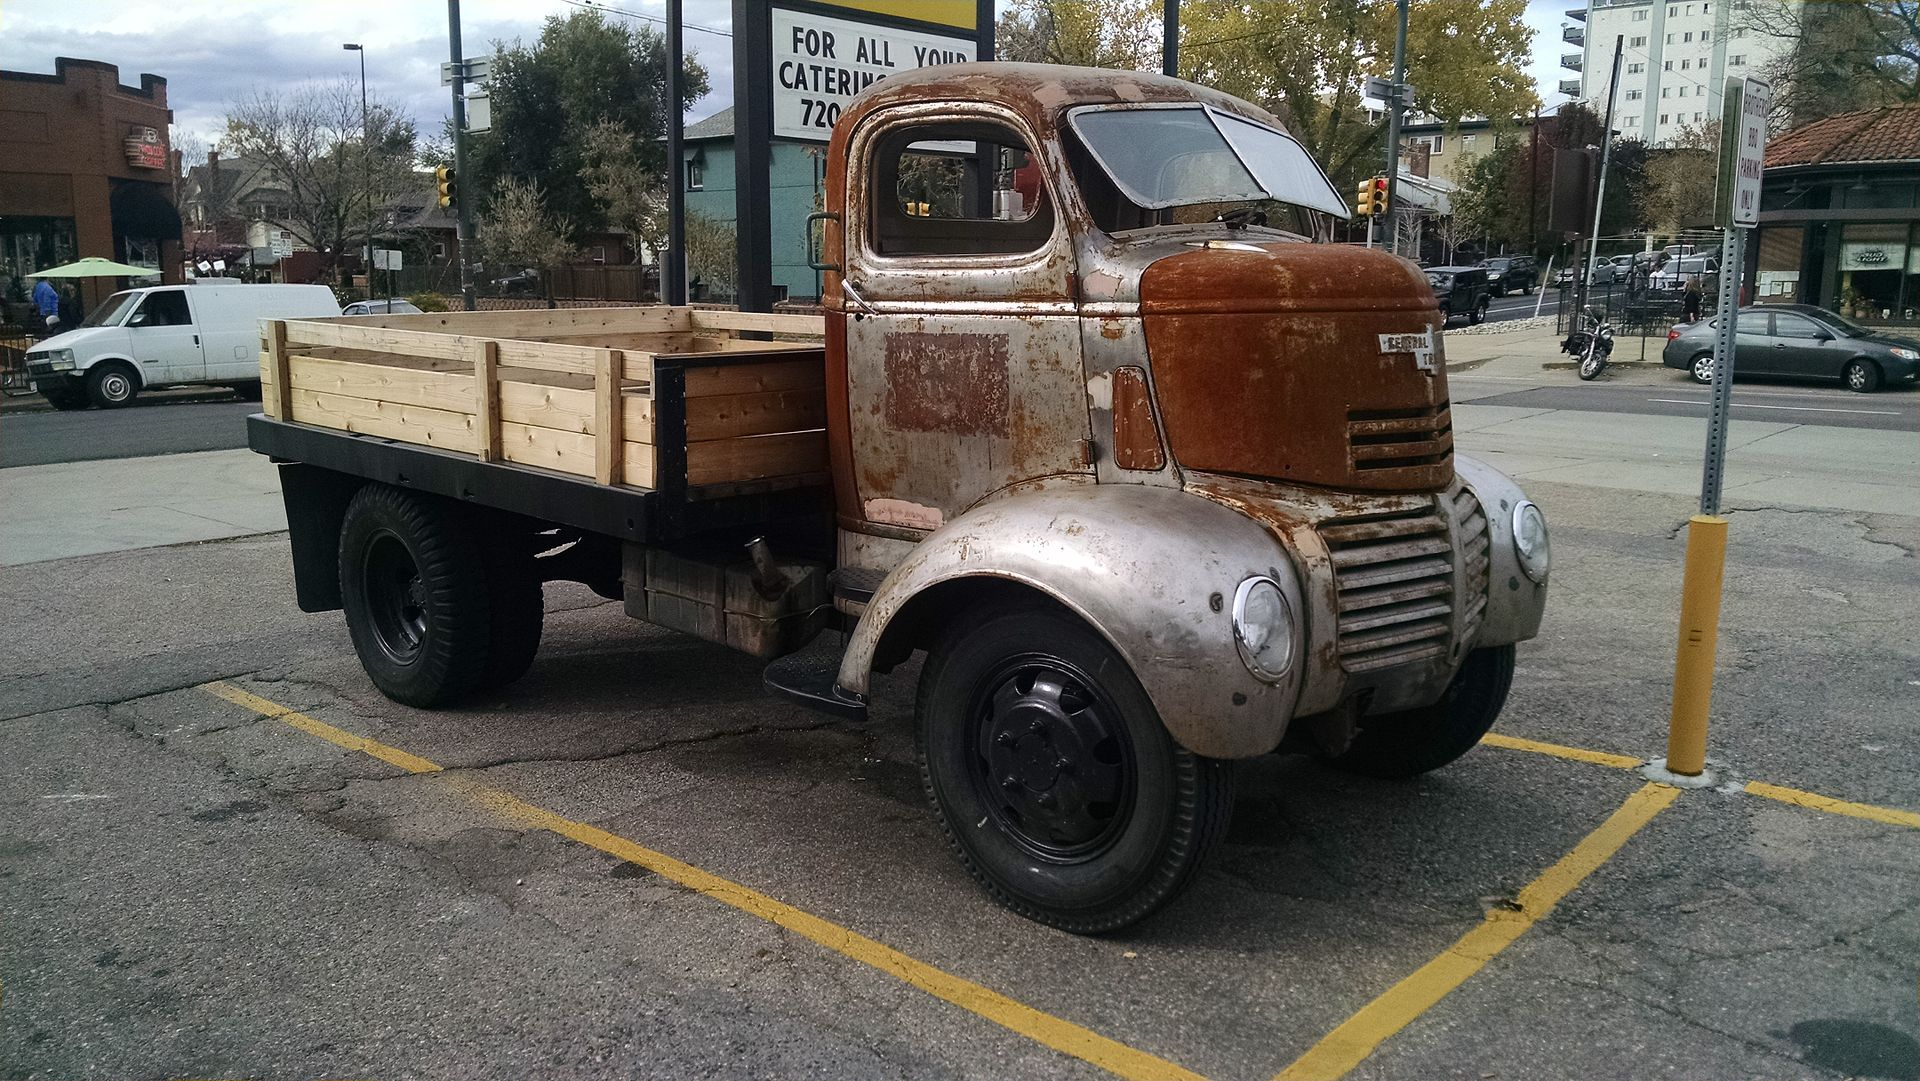 1947 Gmc Ff250 Series Cabover Truck Side View Automobile 1951 1953 Chevrolet Pickup Jada Wikipedia